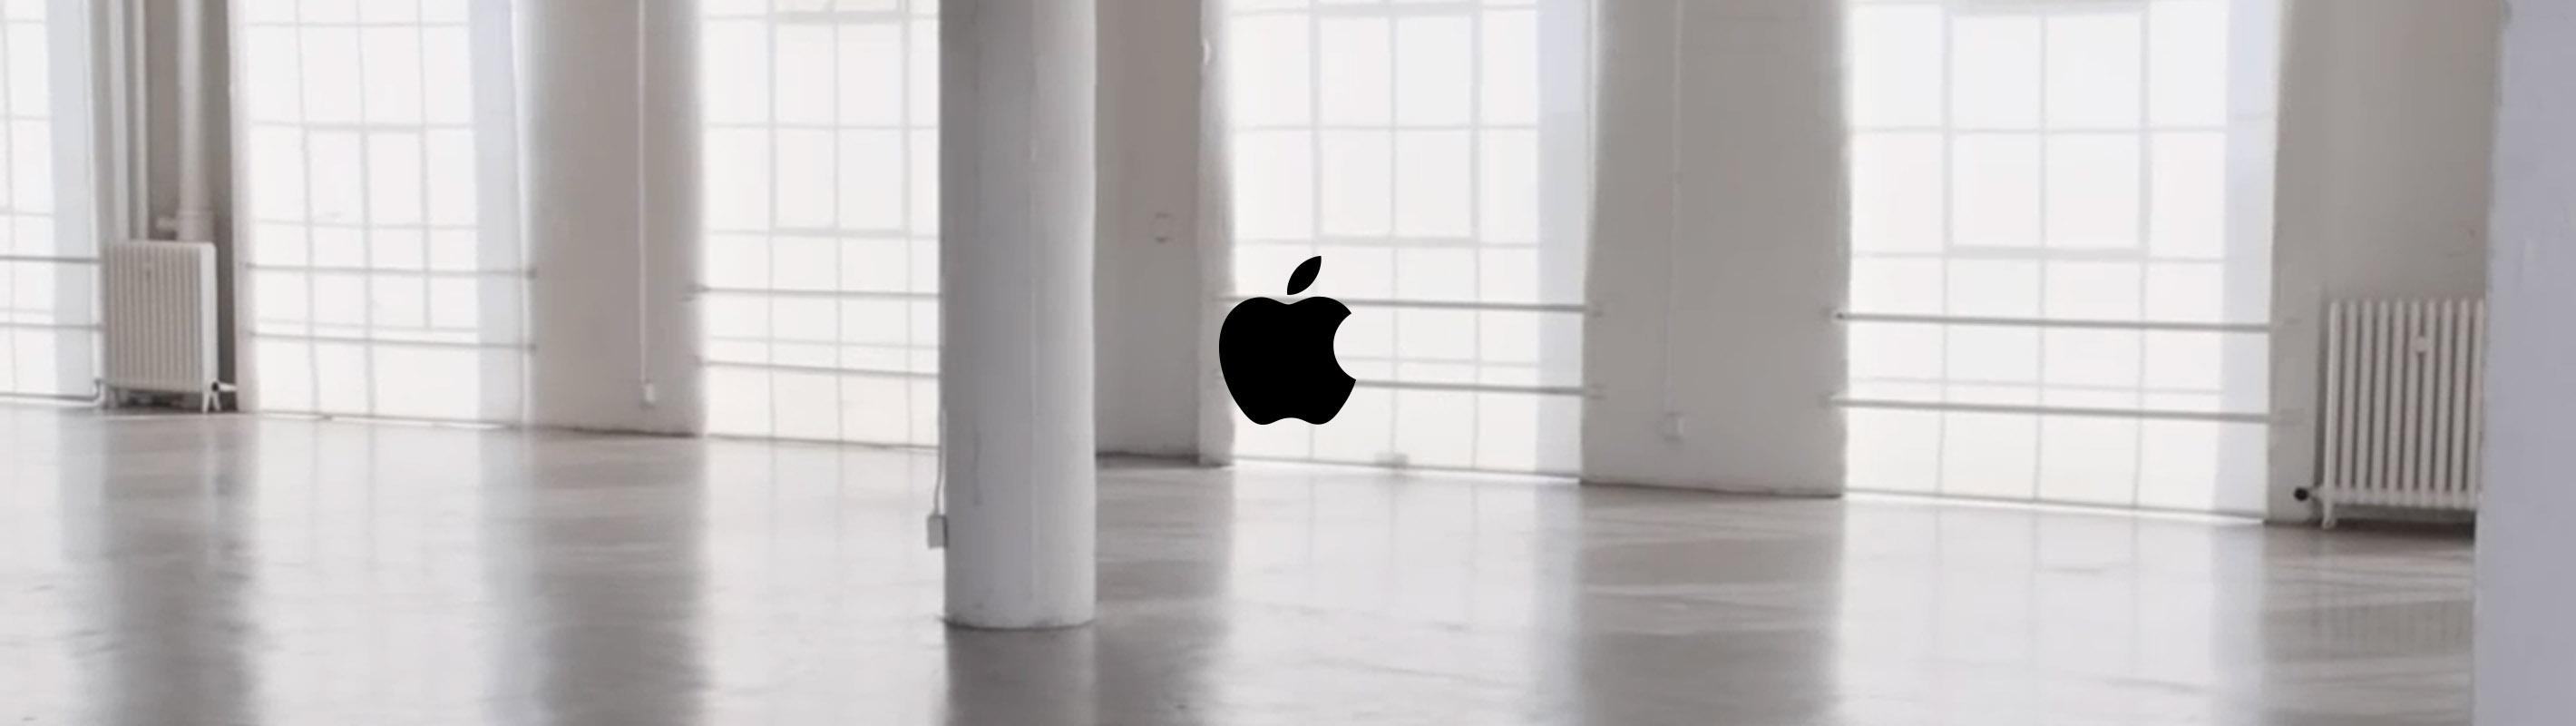 Apple Perspective anthem film